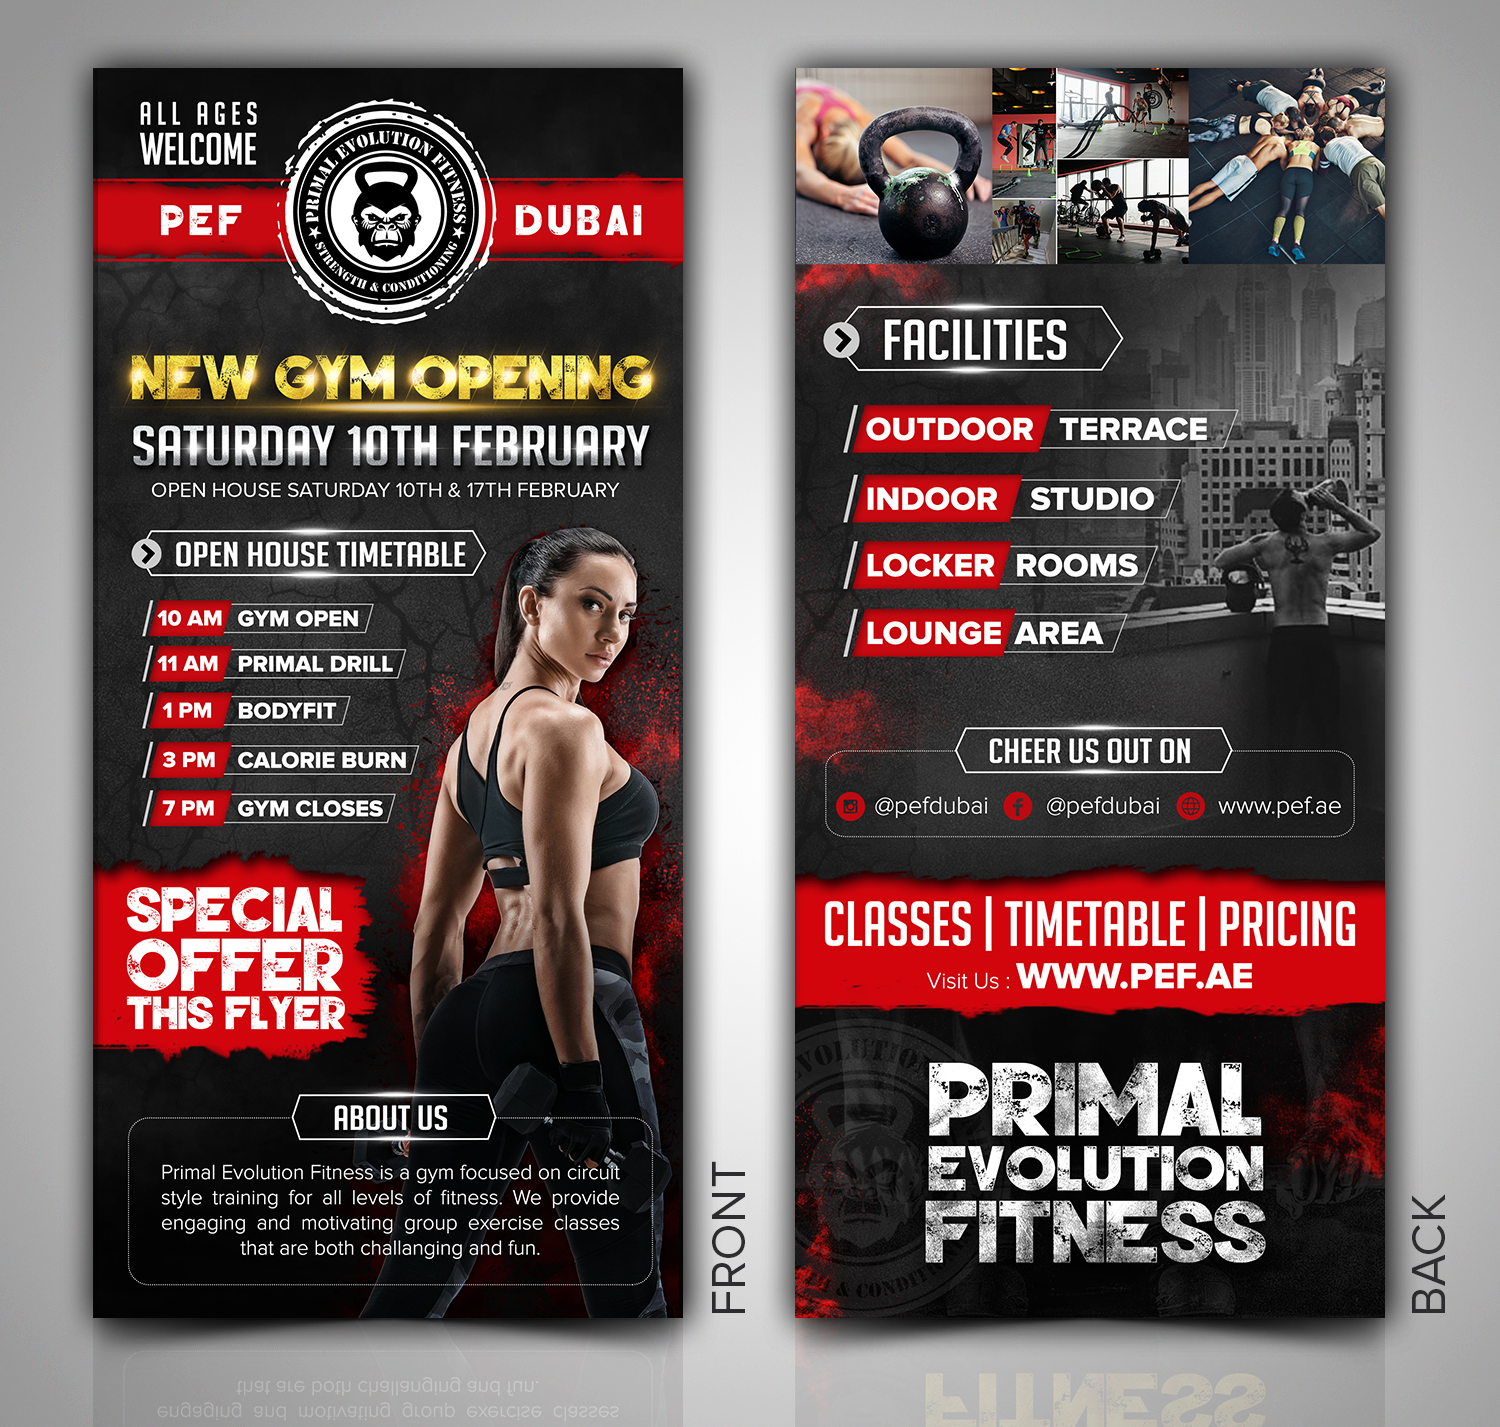 Fitness Flyer | Elegant Spielerisch Fitness Flyer Design Fur Primal Evolution